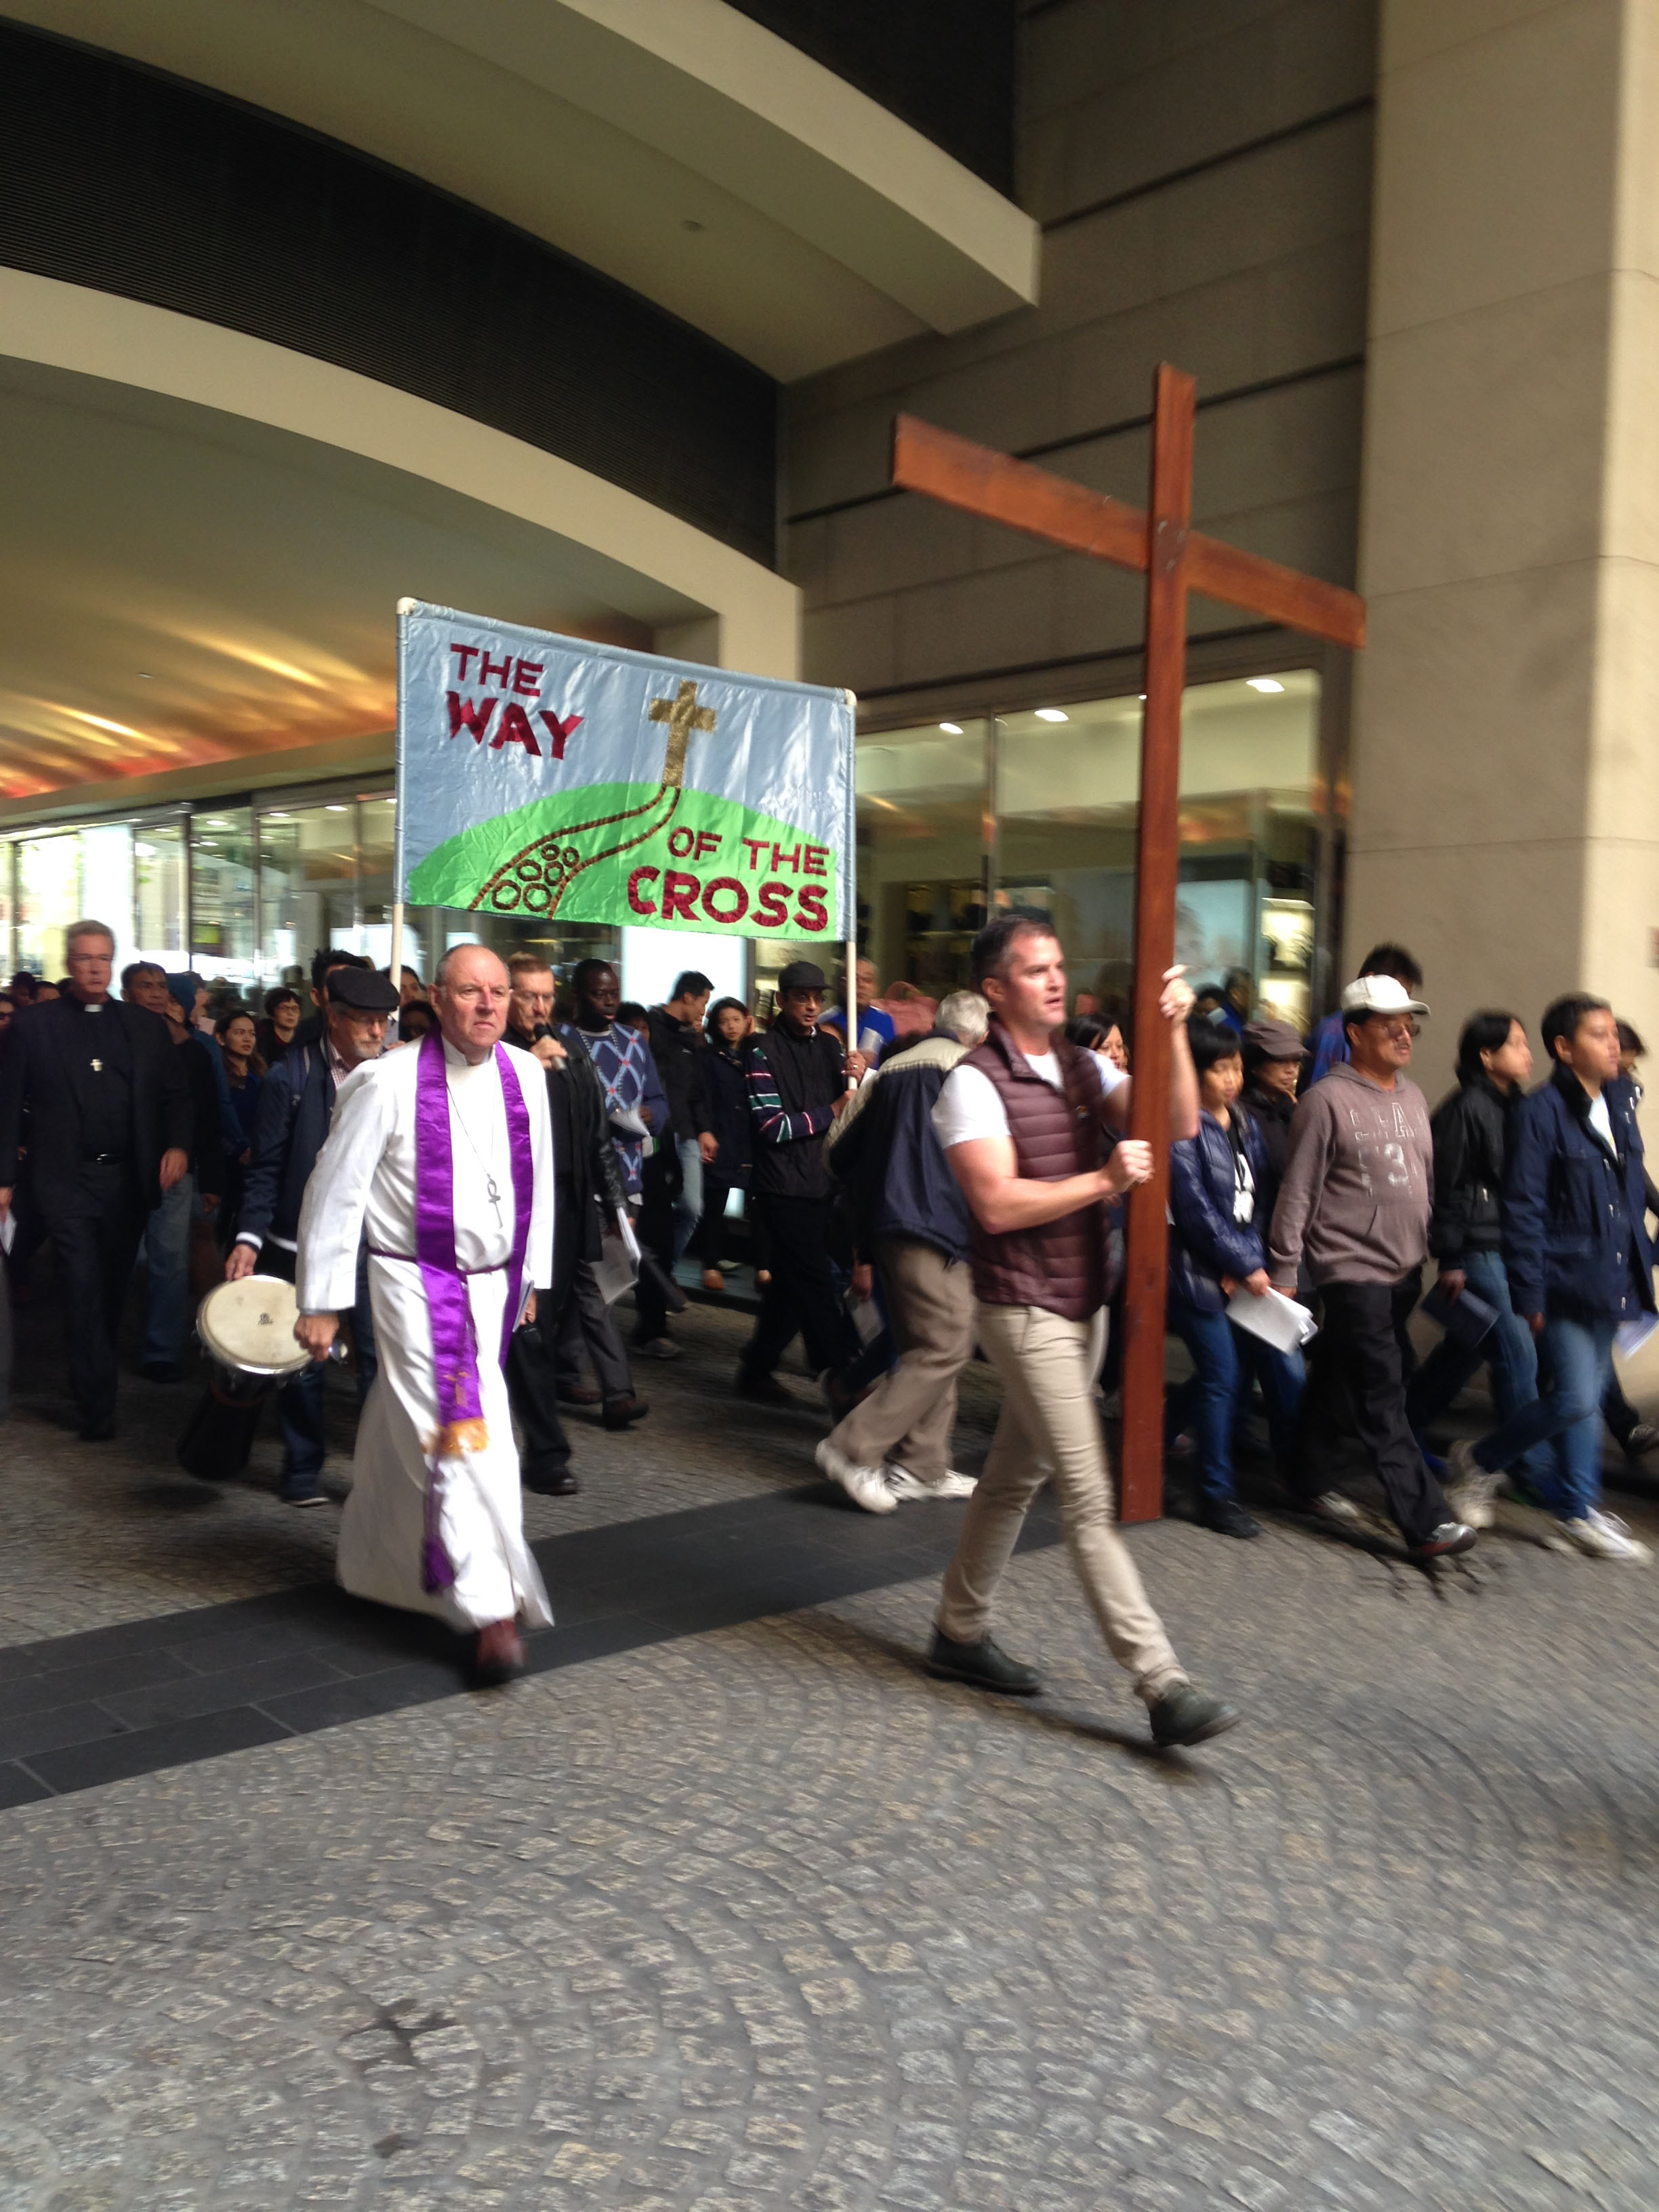 The Way of the Cross 2016 banner and cross pass beneath the arch of the Westin Hotel